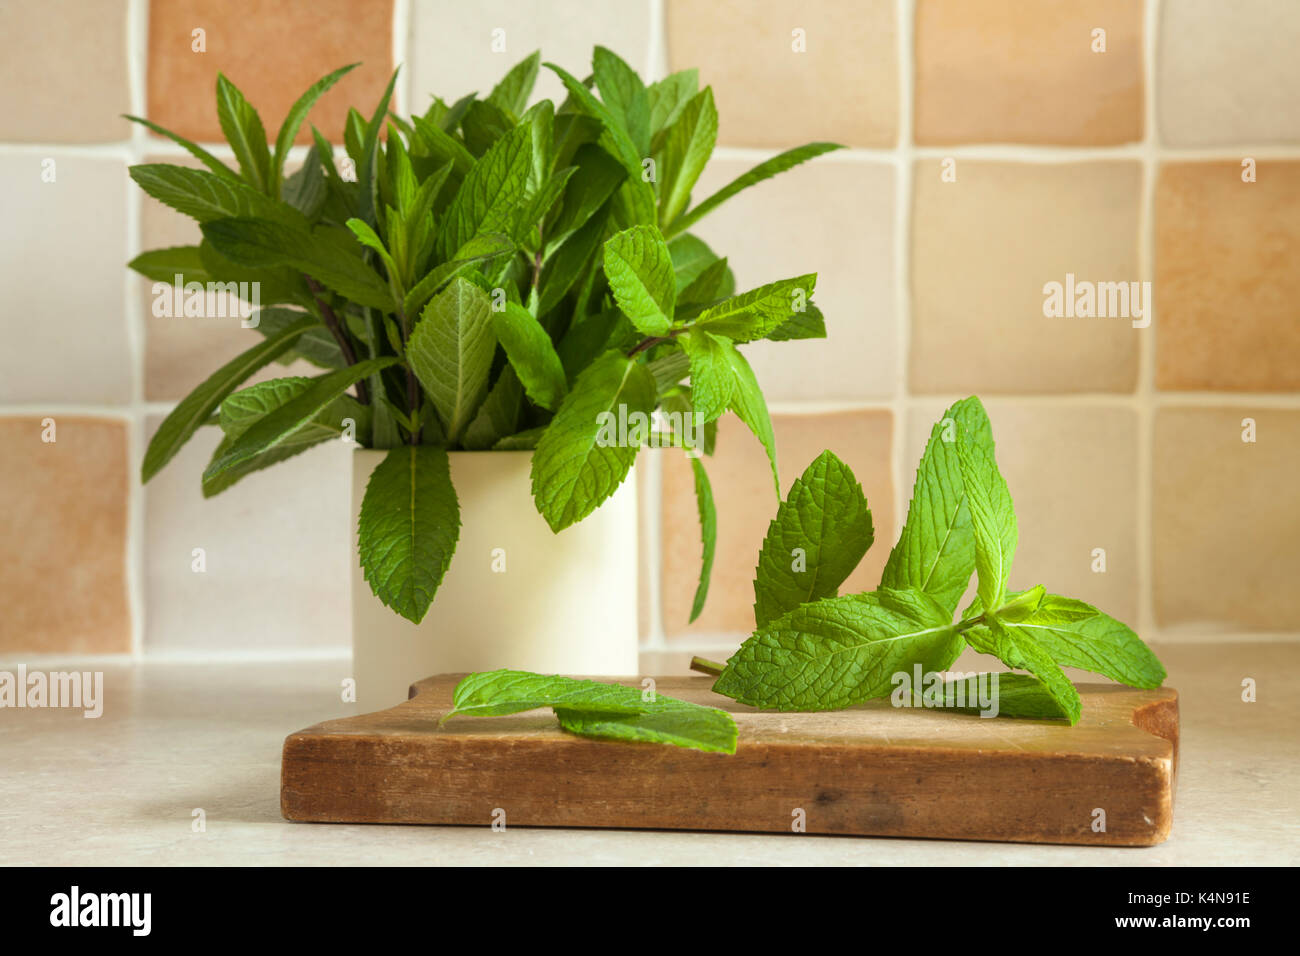 Sprigs of fresh garden mint leaves in a ceramic pot and also placed on a small wooden chopping board on a kitchen counter shot in natural light. - Stock Image